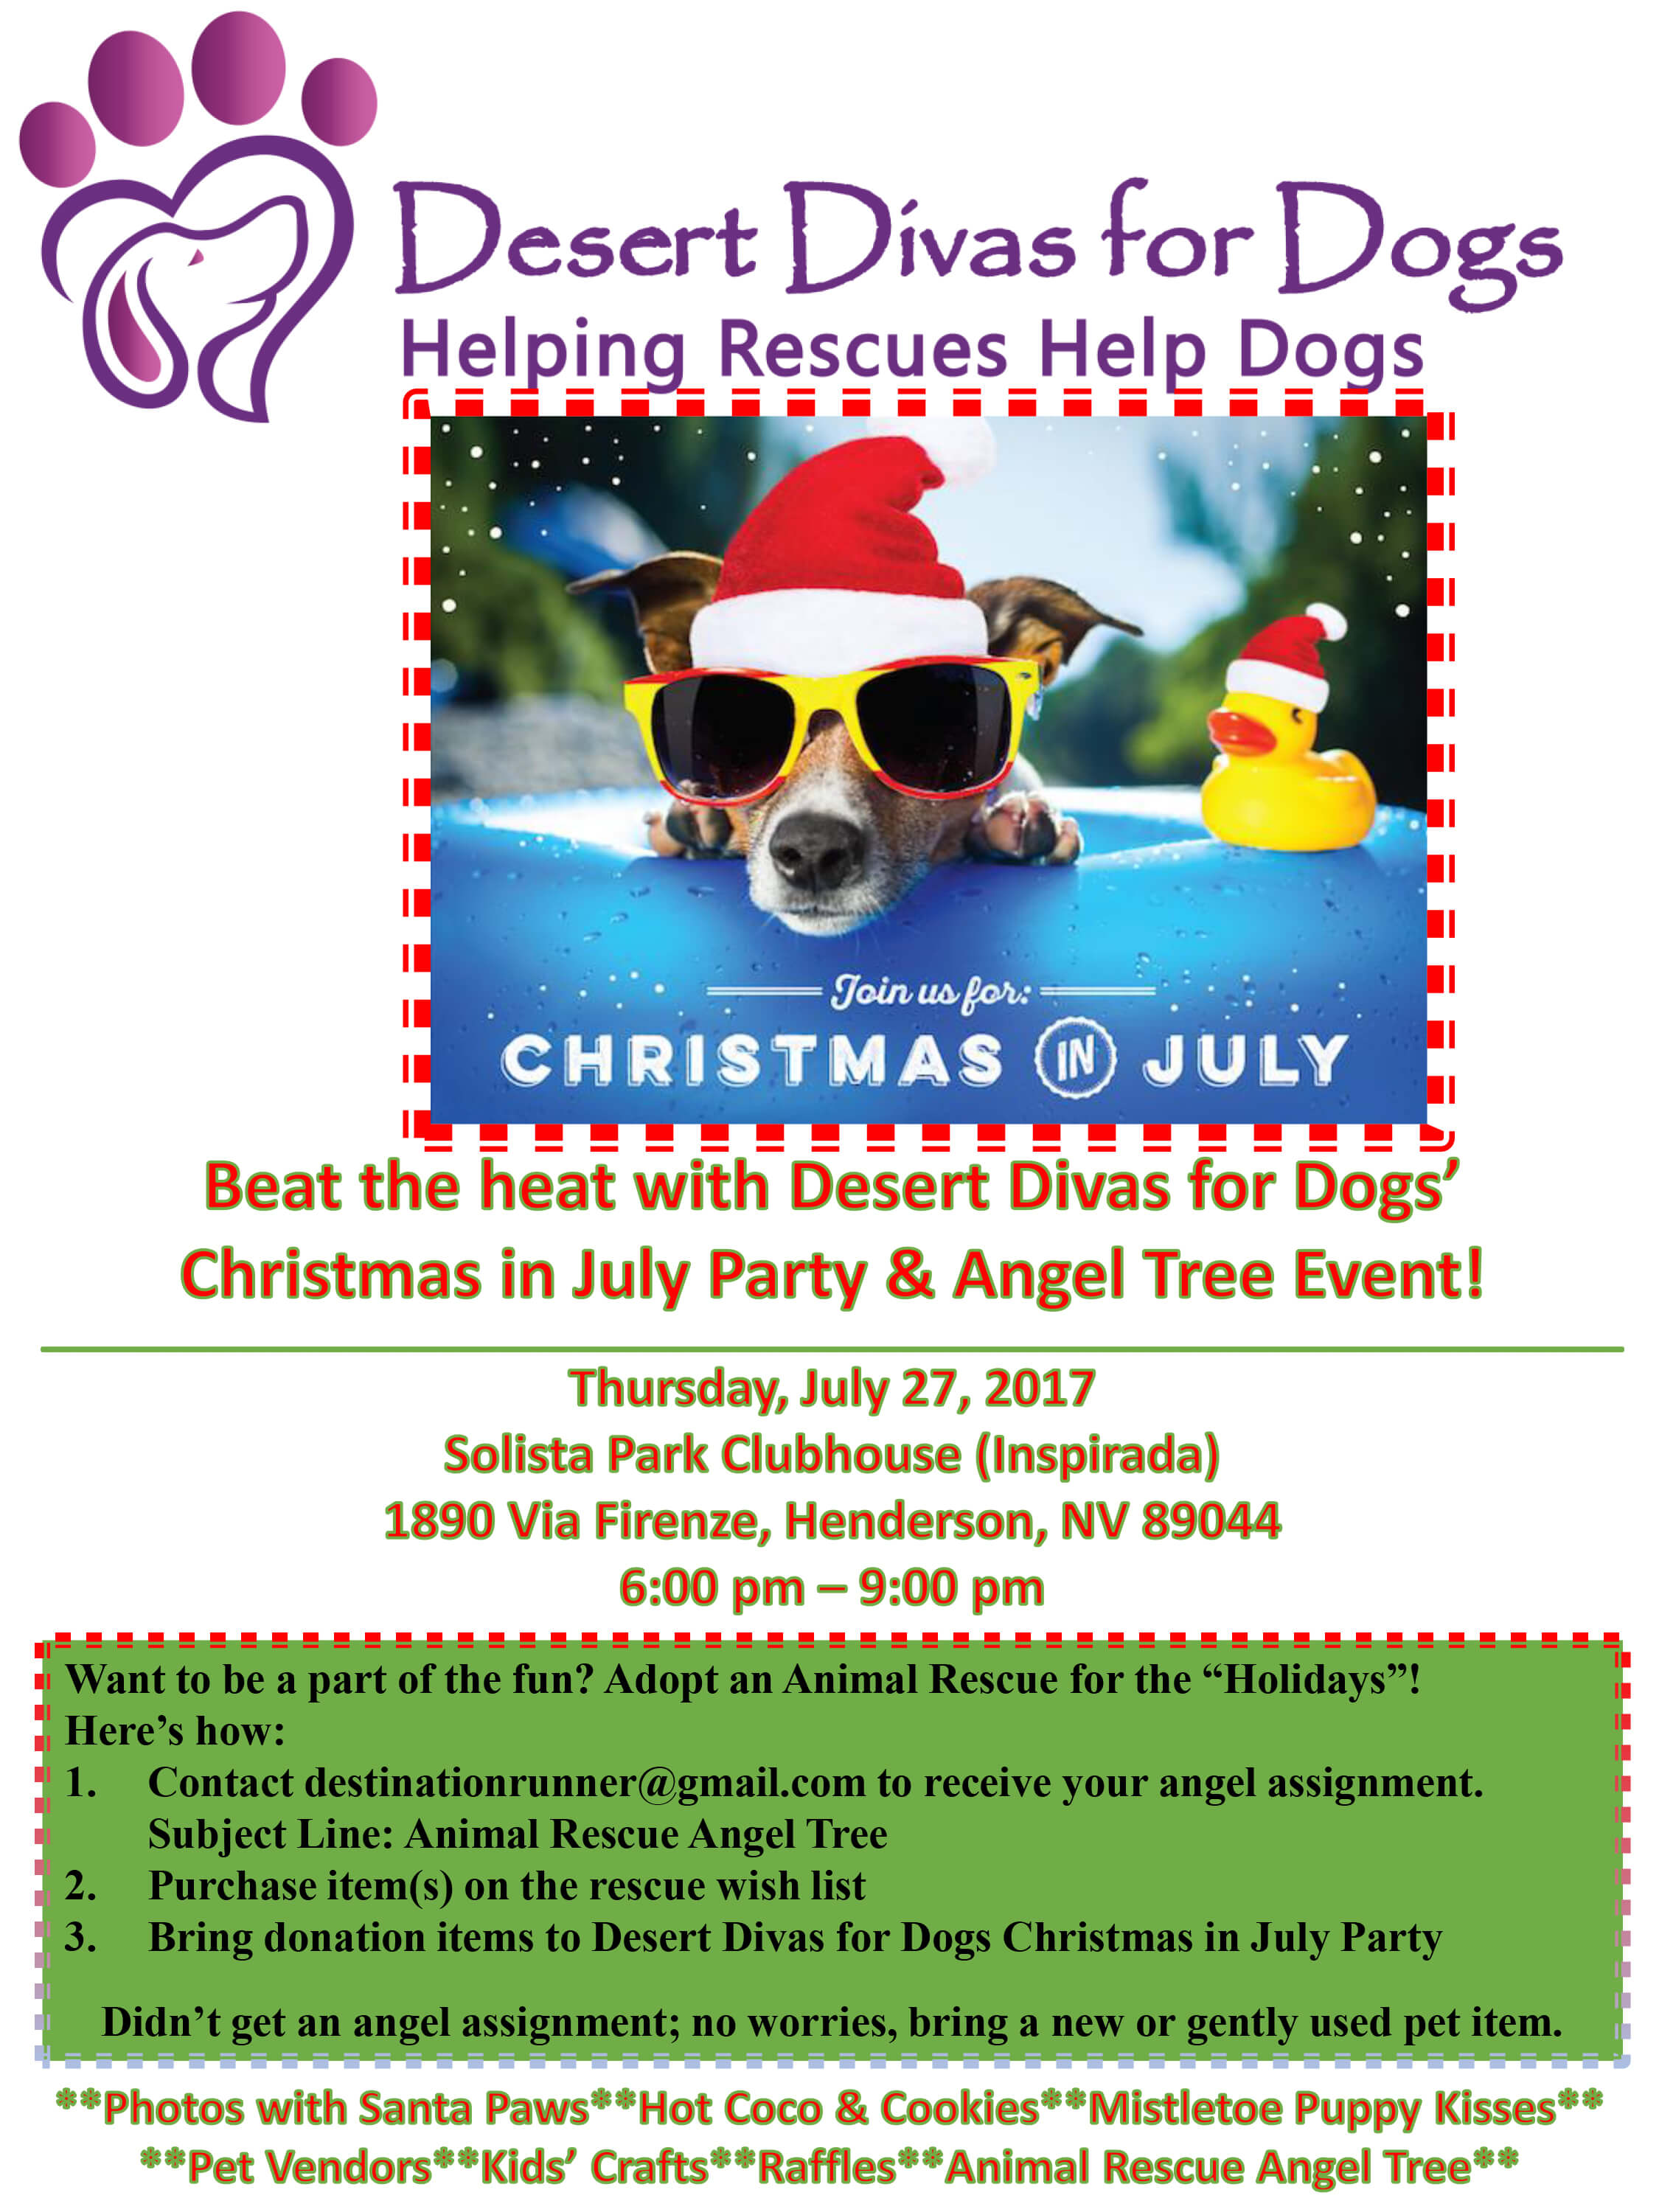 Desert Divas for Dogs : Christmas in July Event @ Solista Park Clubhouse (Inspirada) | Henderson | Nevada | United States